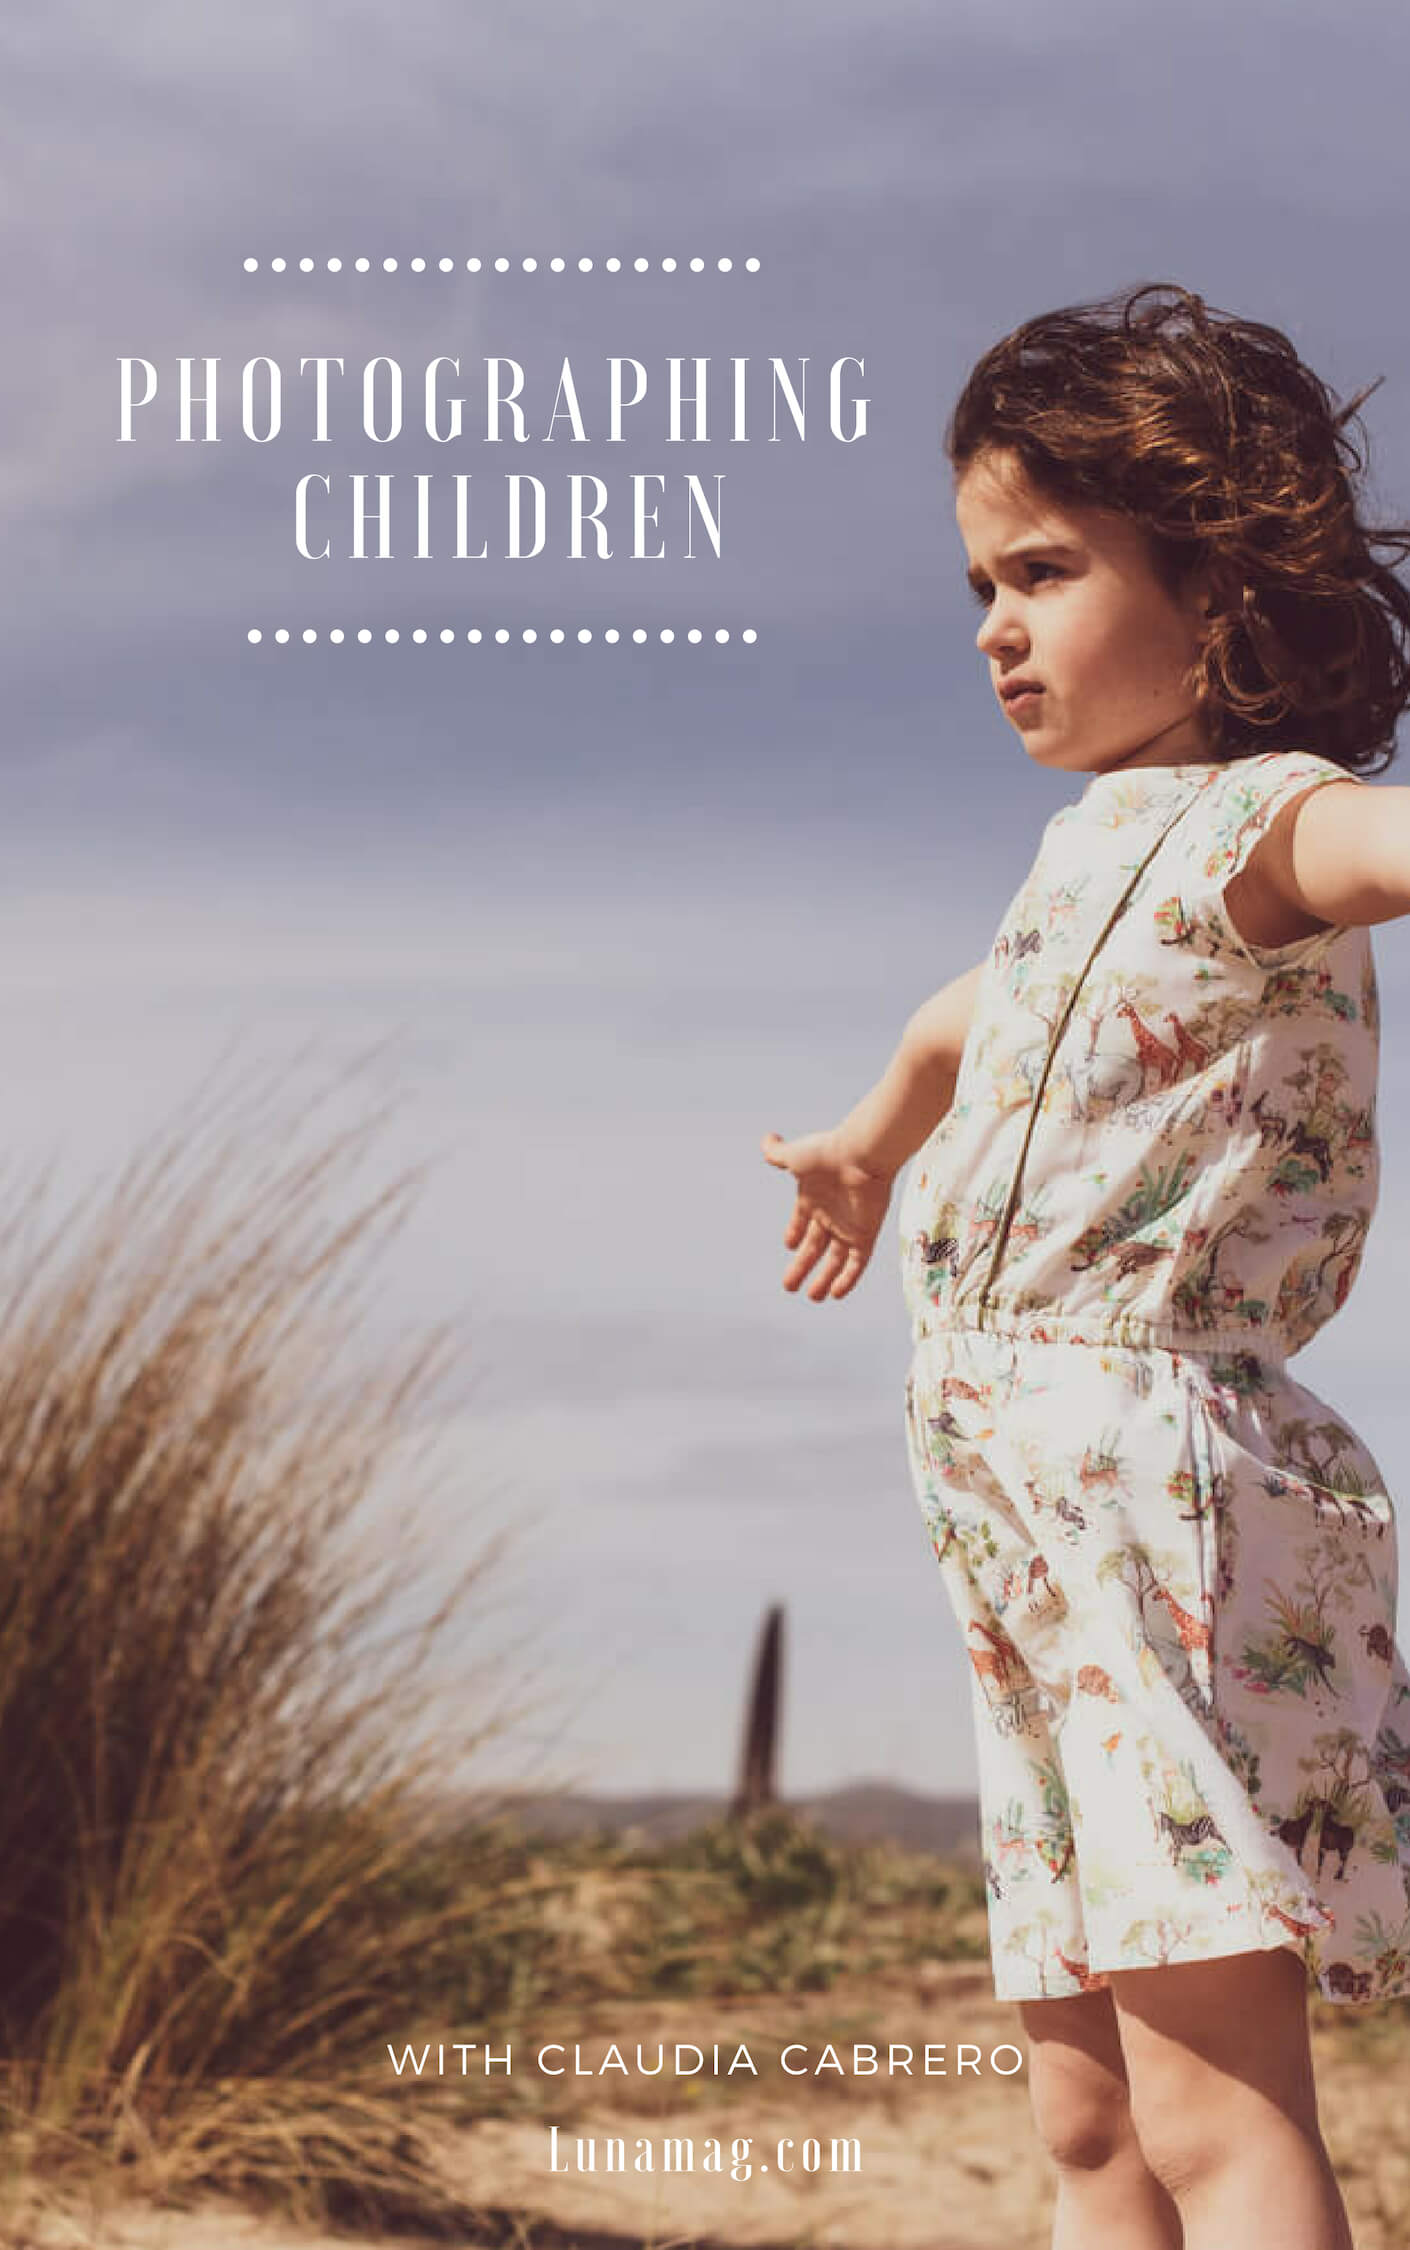 Photographing children top tips